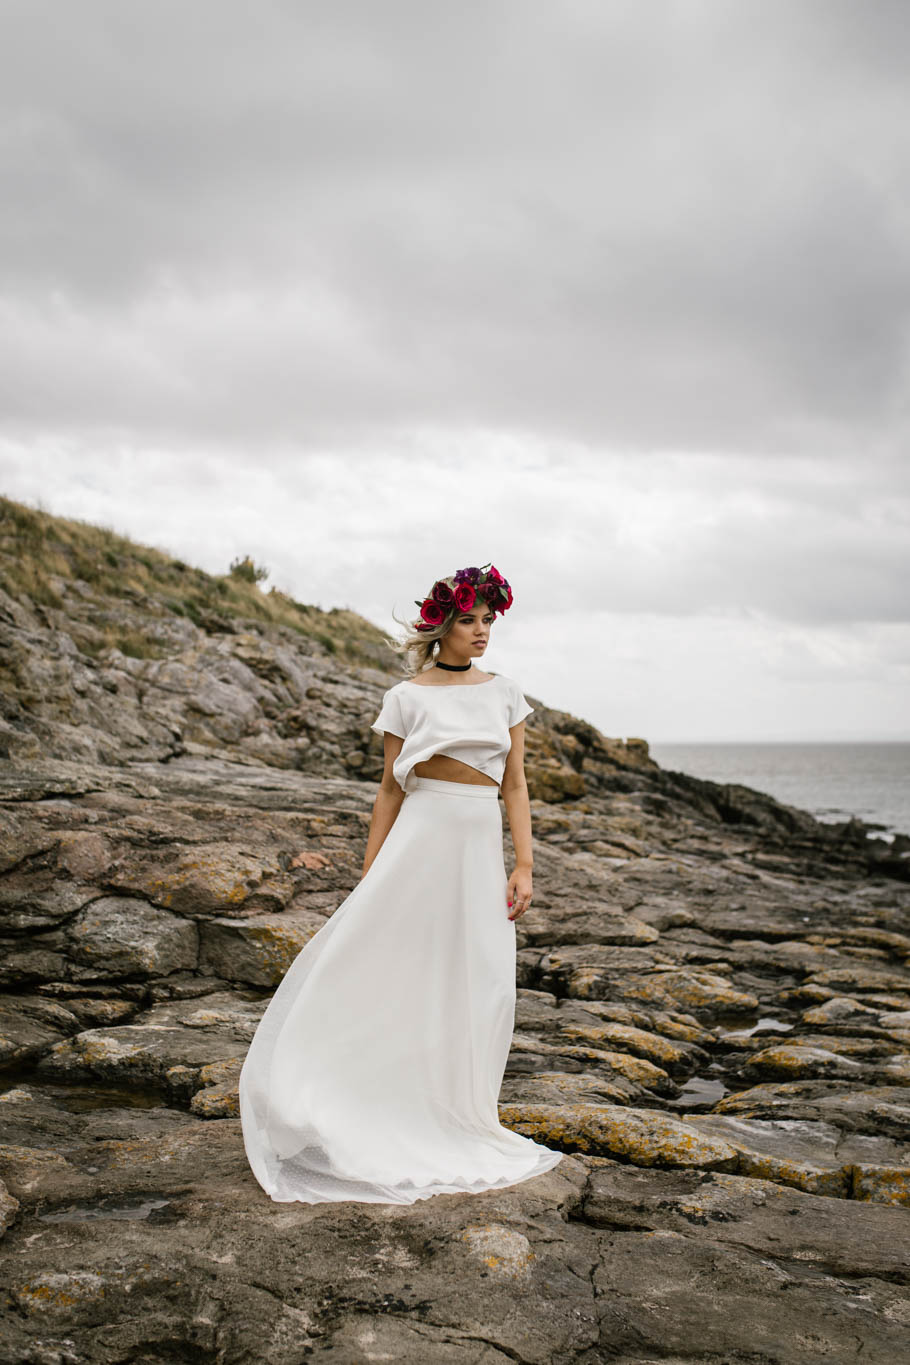 10. Bride_Barry-Island_Styled-Shoot-65.jpg